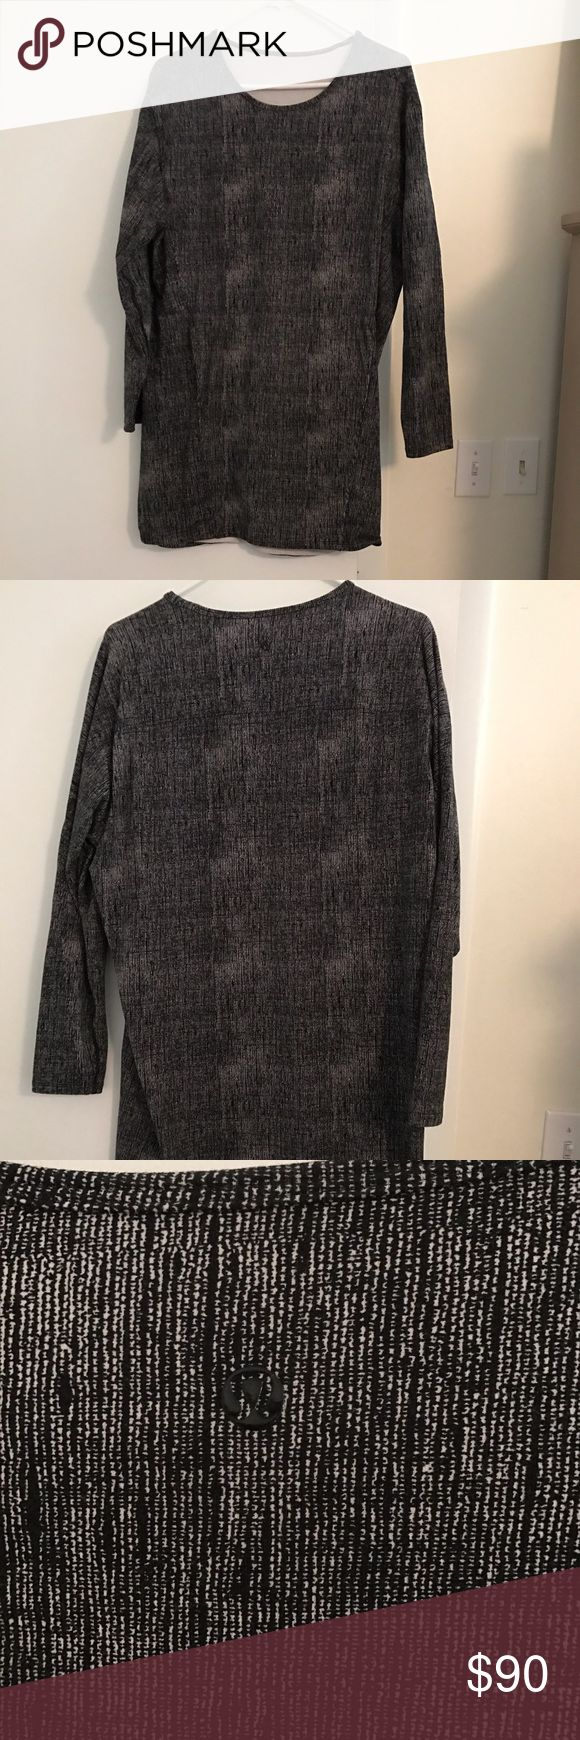 Lululemon dress Long sleeve Lululemon dress. Two pockets in front. Has been worn but in good condition lululemon athletica Dresses Long Sleeve